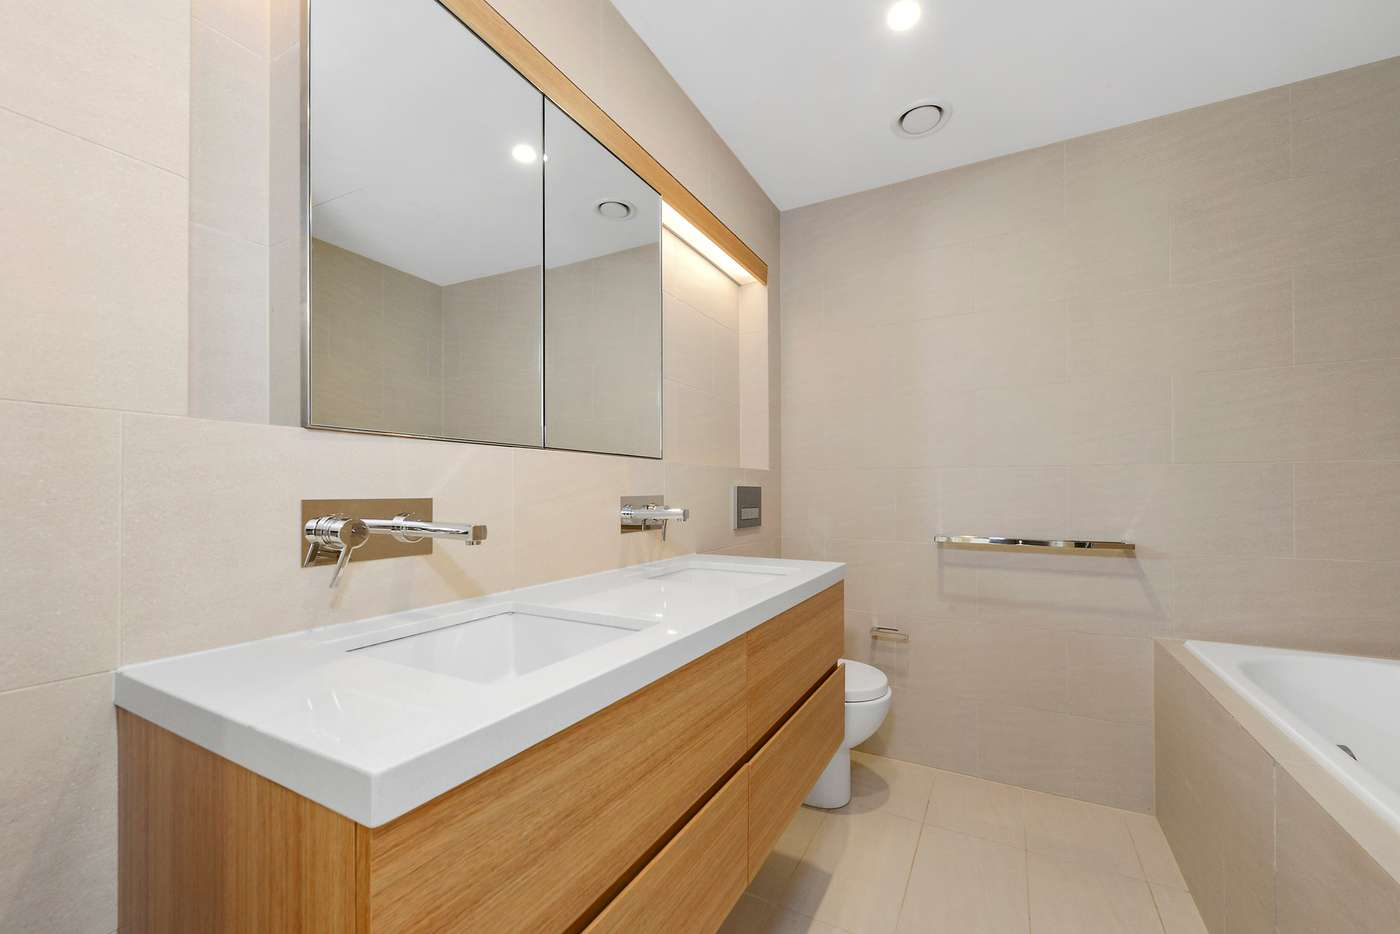 Fifth view of Homely apartment listing, 74/68 Sir John Young Crescent, Woolloomooloo NSW 2011